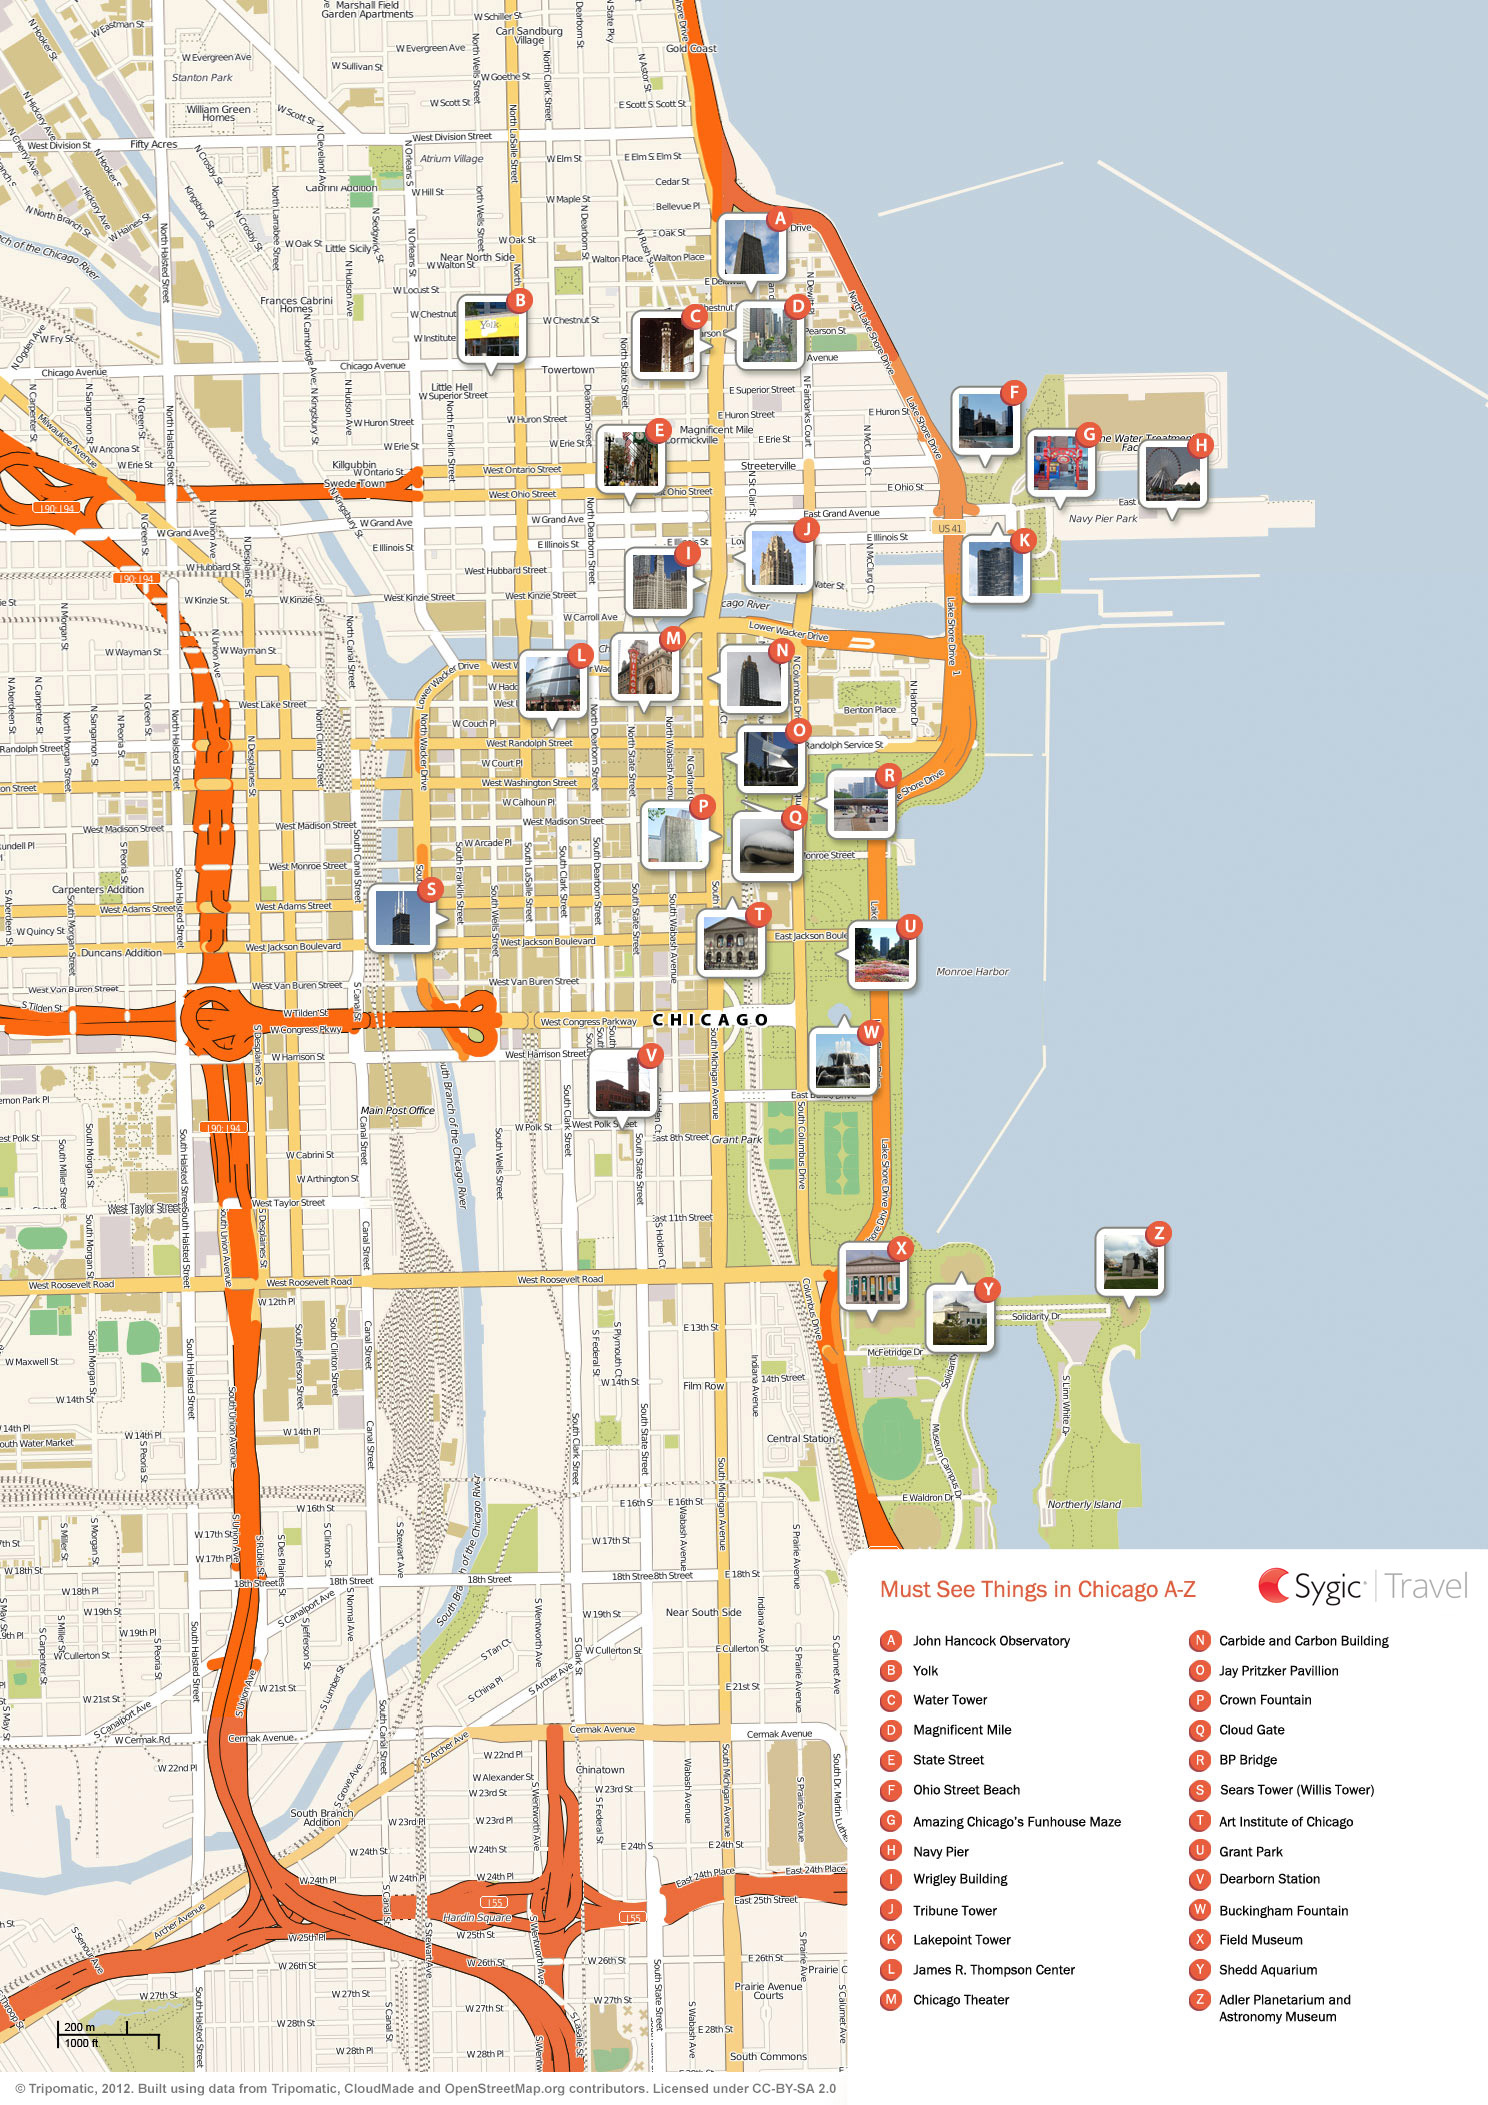 Chicago Printable Tourist Map – Map Of Rome For Tourists